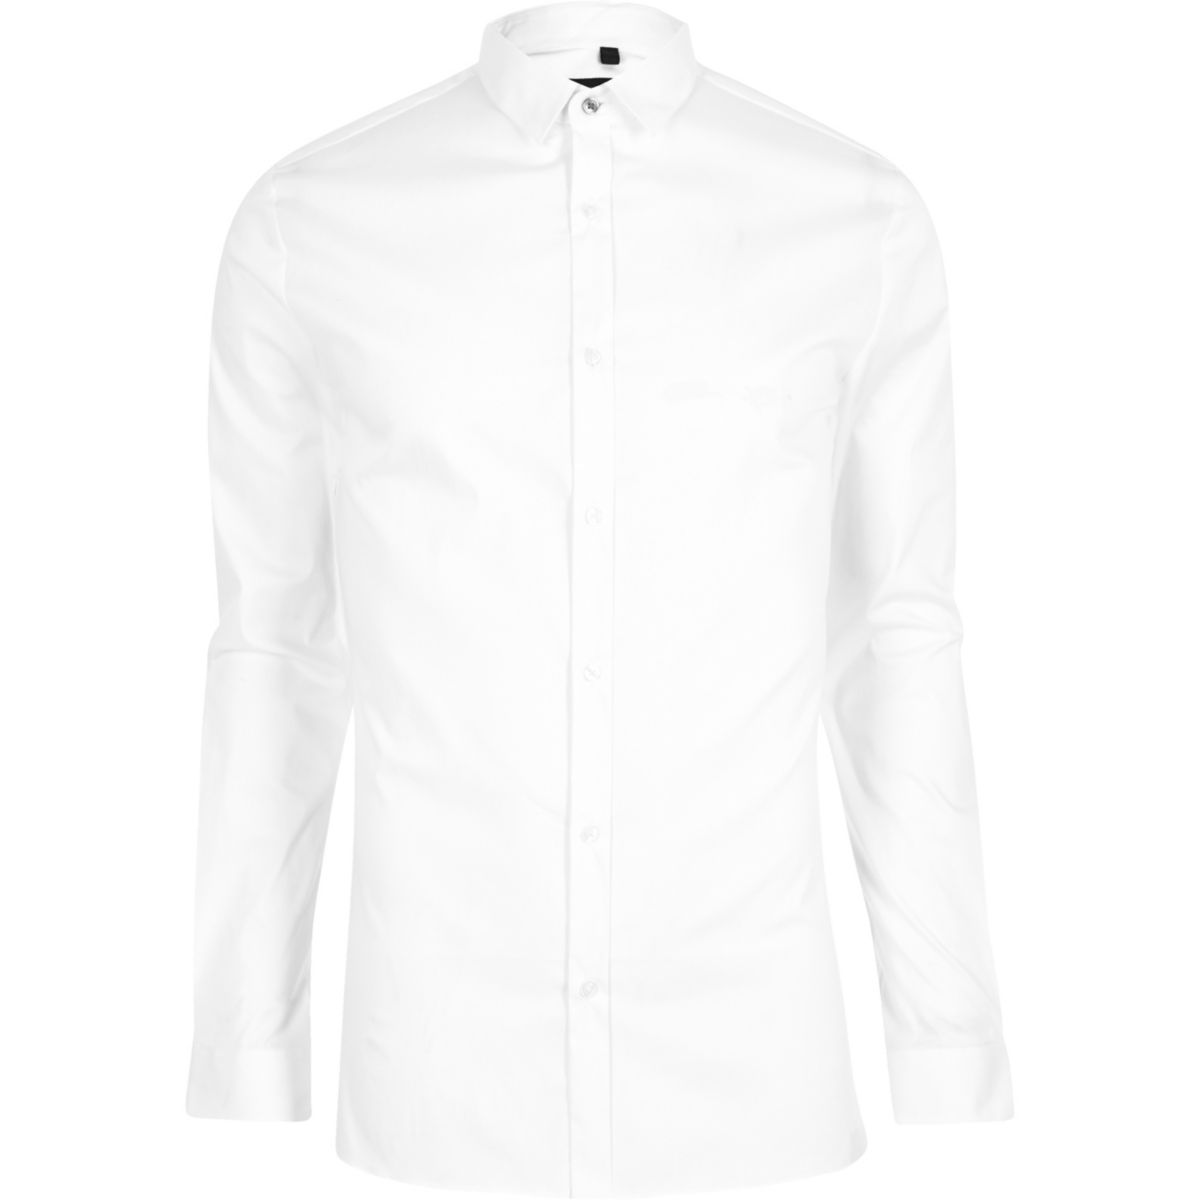 White long sleeve skinny fit shirt